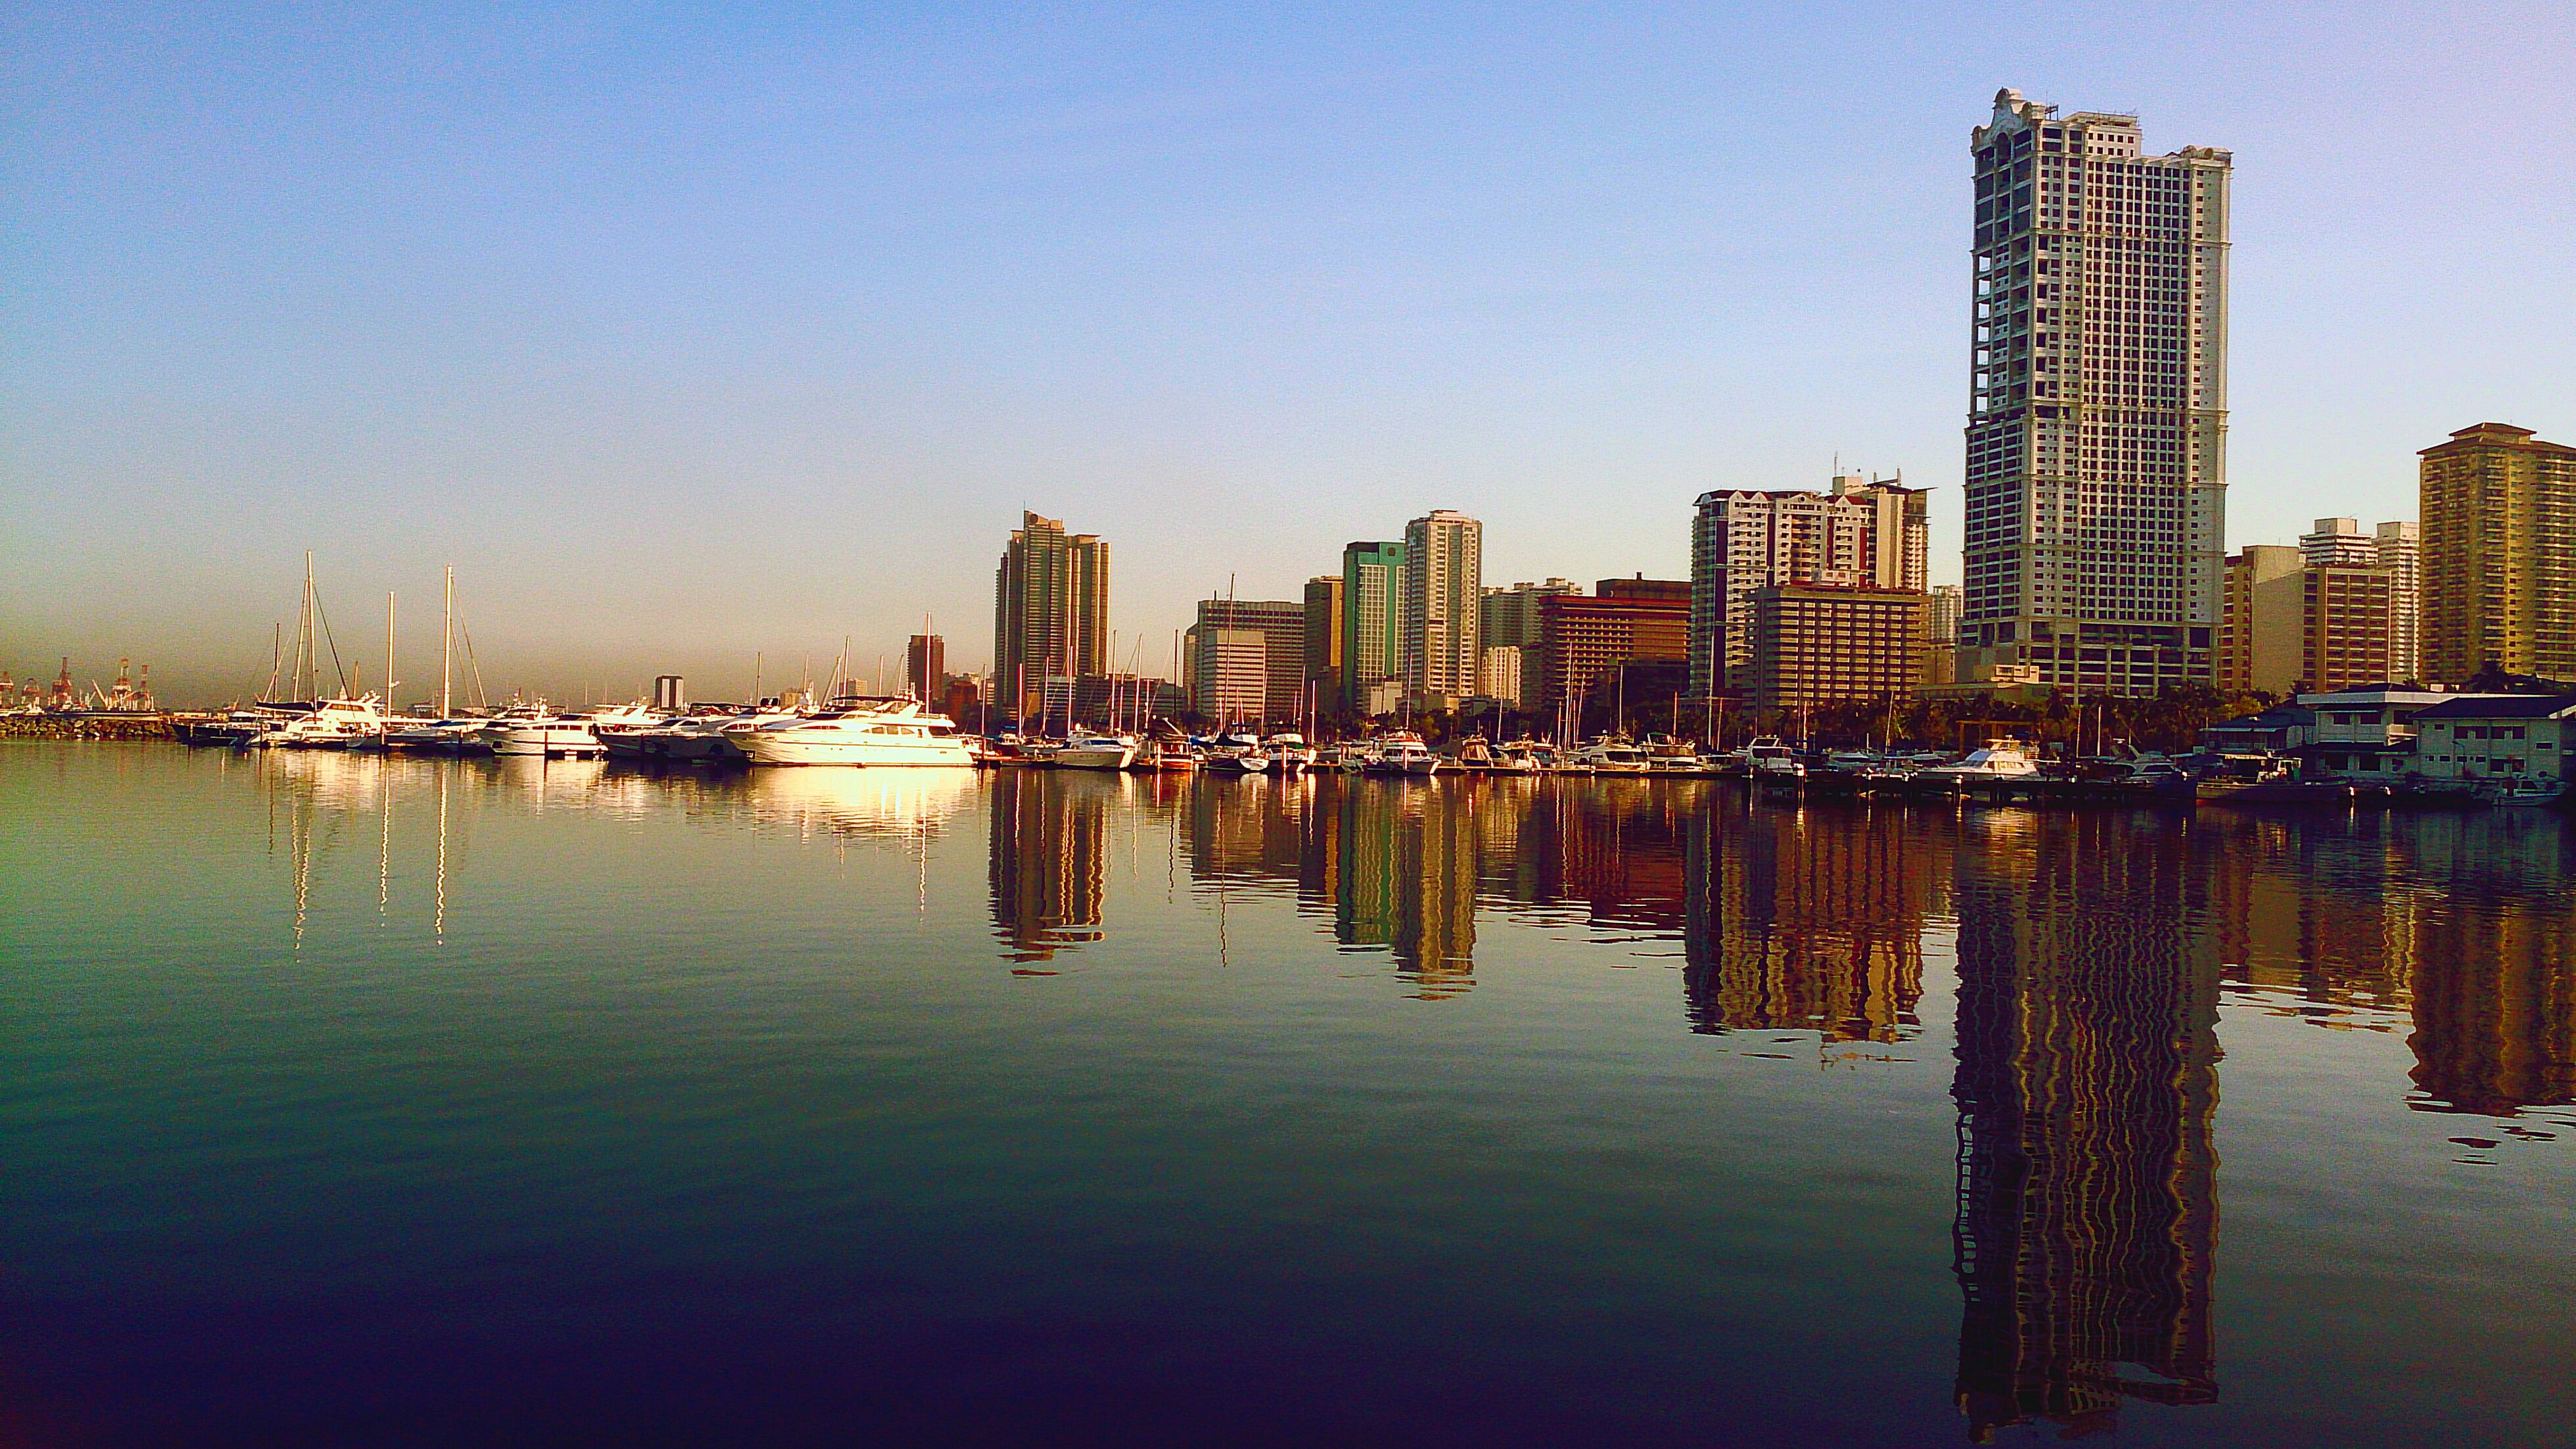 building exterior, architecture, water, city, built structure, reflection, clear sky, waterfront, skyscraper, cityscape, illuminated, copy space, river, urban skyline, tall - high, tower, blue, skyline, modern, tall